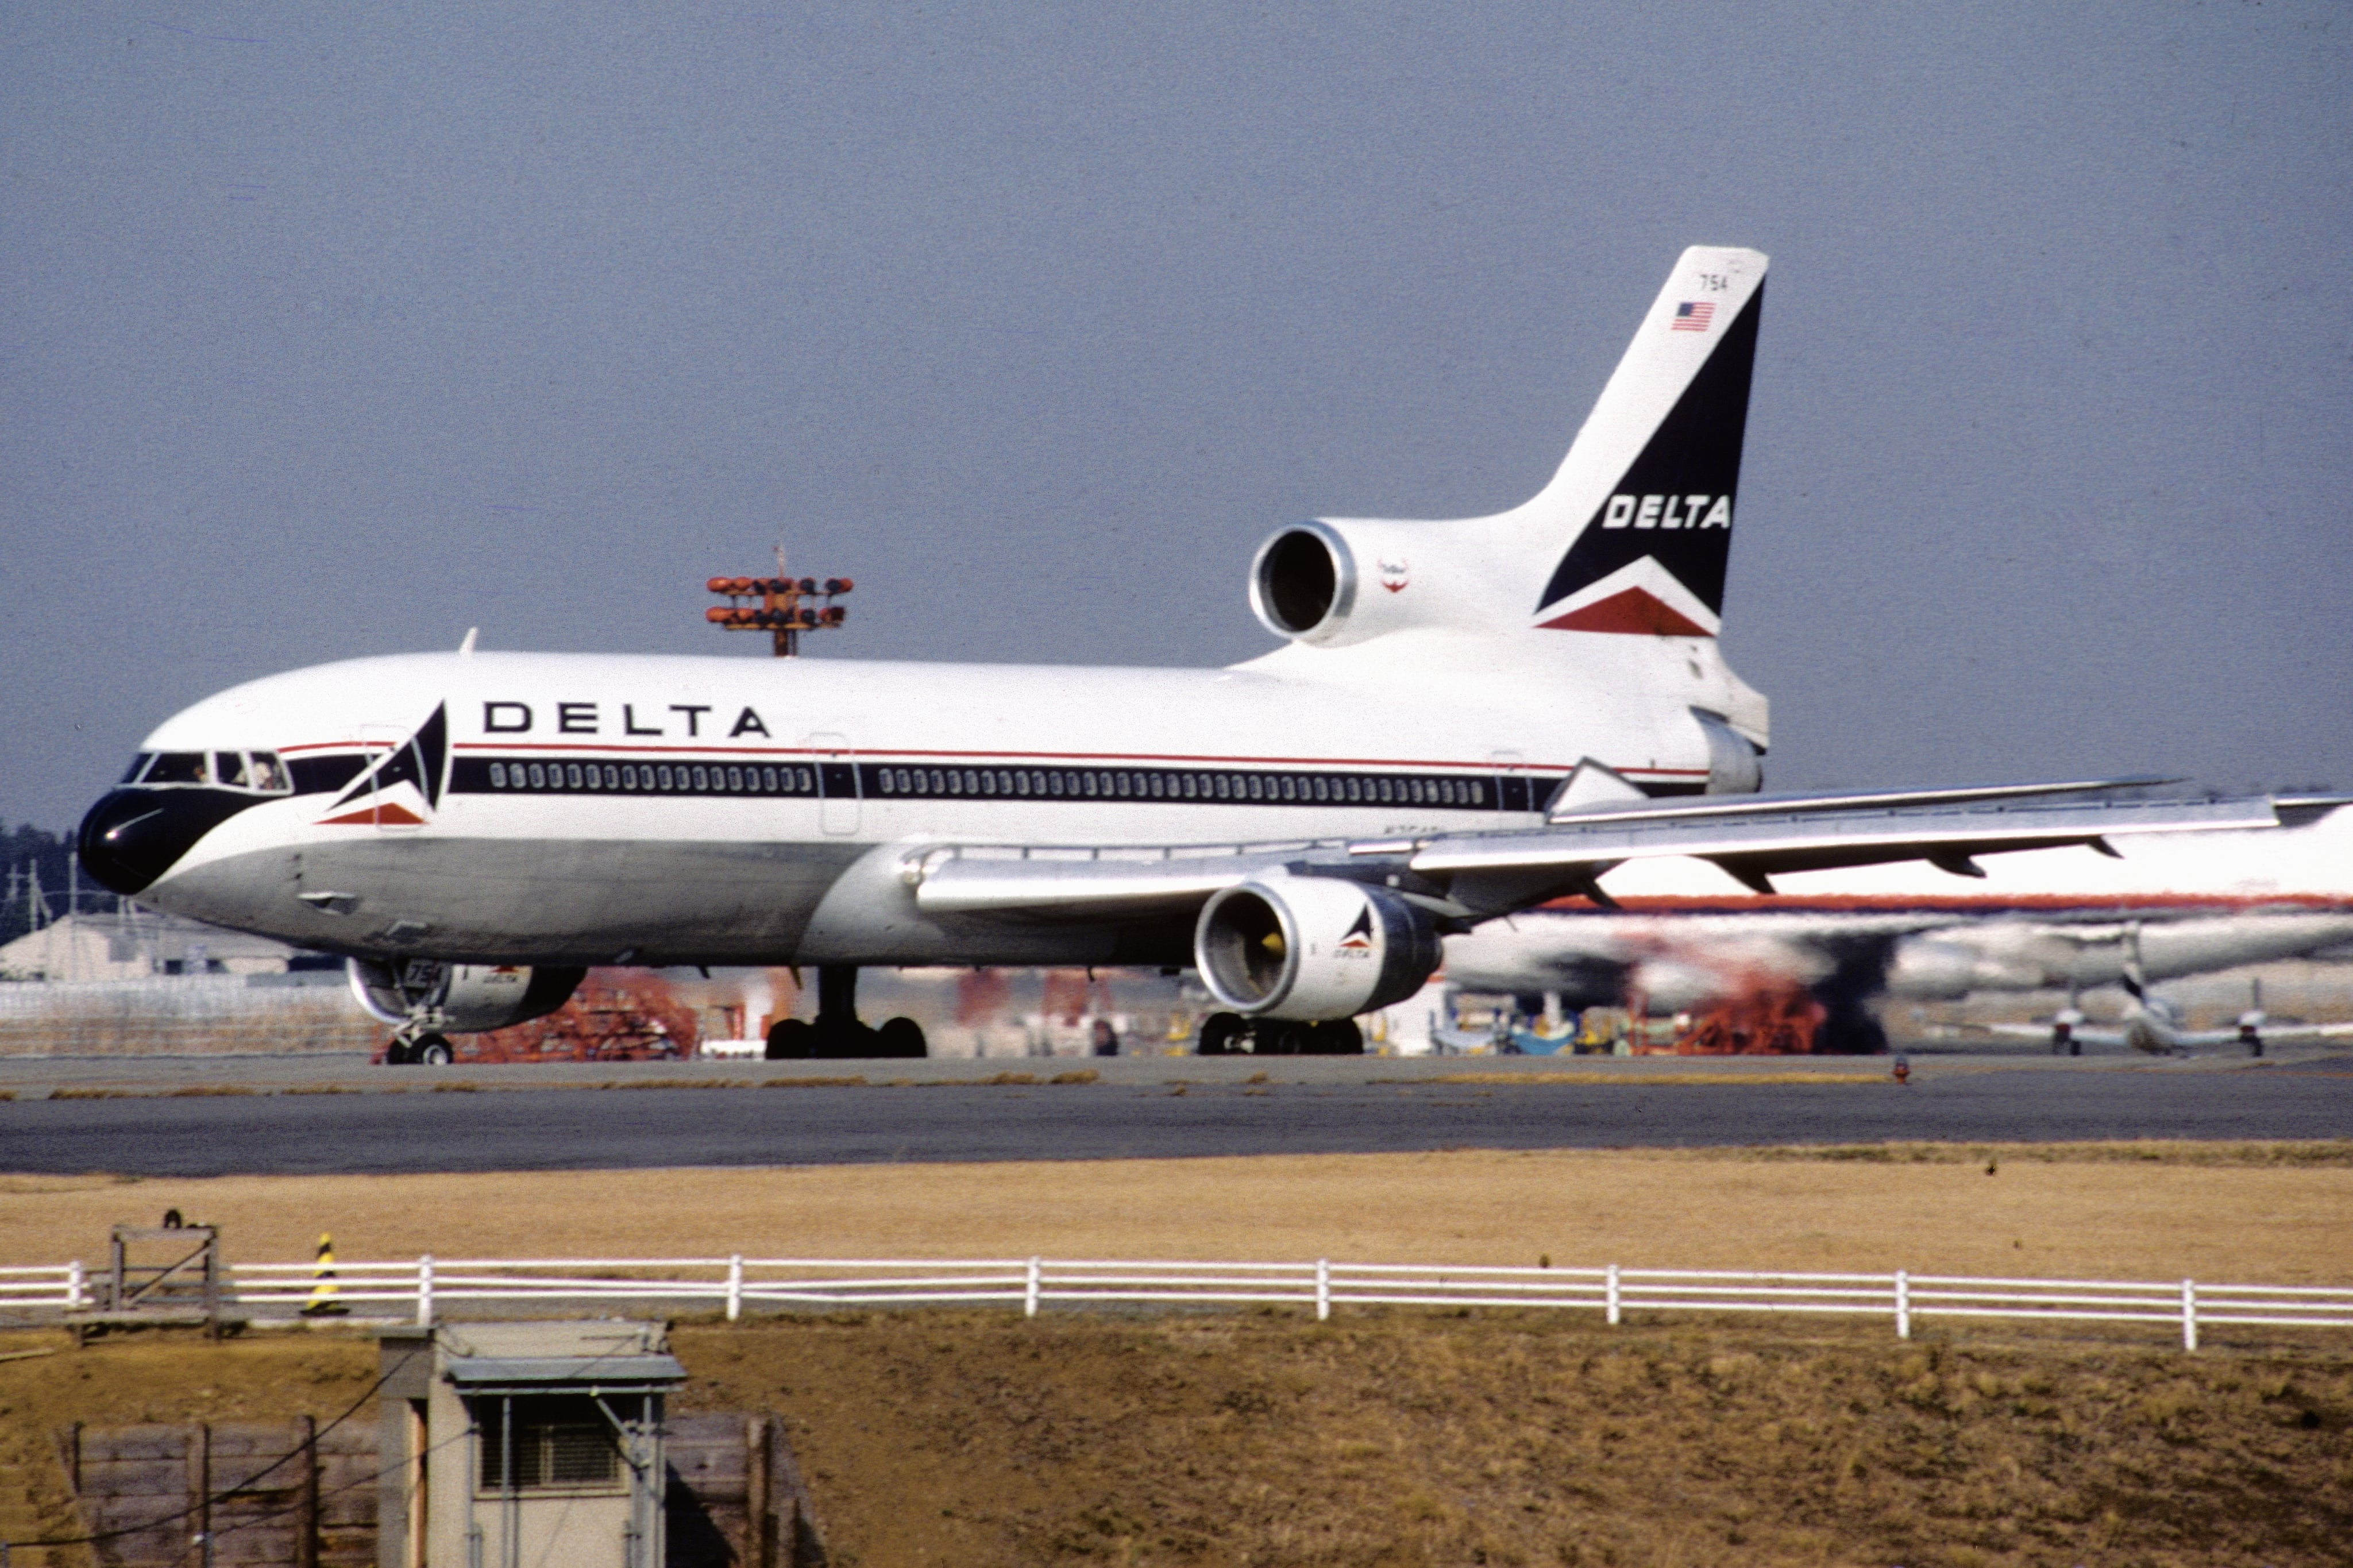 latest military drones with Tbt Delta Says Farewell L 1011 on Gremlins Is Darpas Latest Strategy To Swarm Enemy Skies With Small Reusable Drone Armies further Watch as well Heres Footage First Boeing 757 Flight 34 Years Ago Today also Tbt Delta Says Farewell L 1011 besides Passenger Plane Missed Drone Just 20 METRES Came Land Latest Series Near Misses Unmanned Aircraft Skies.